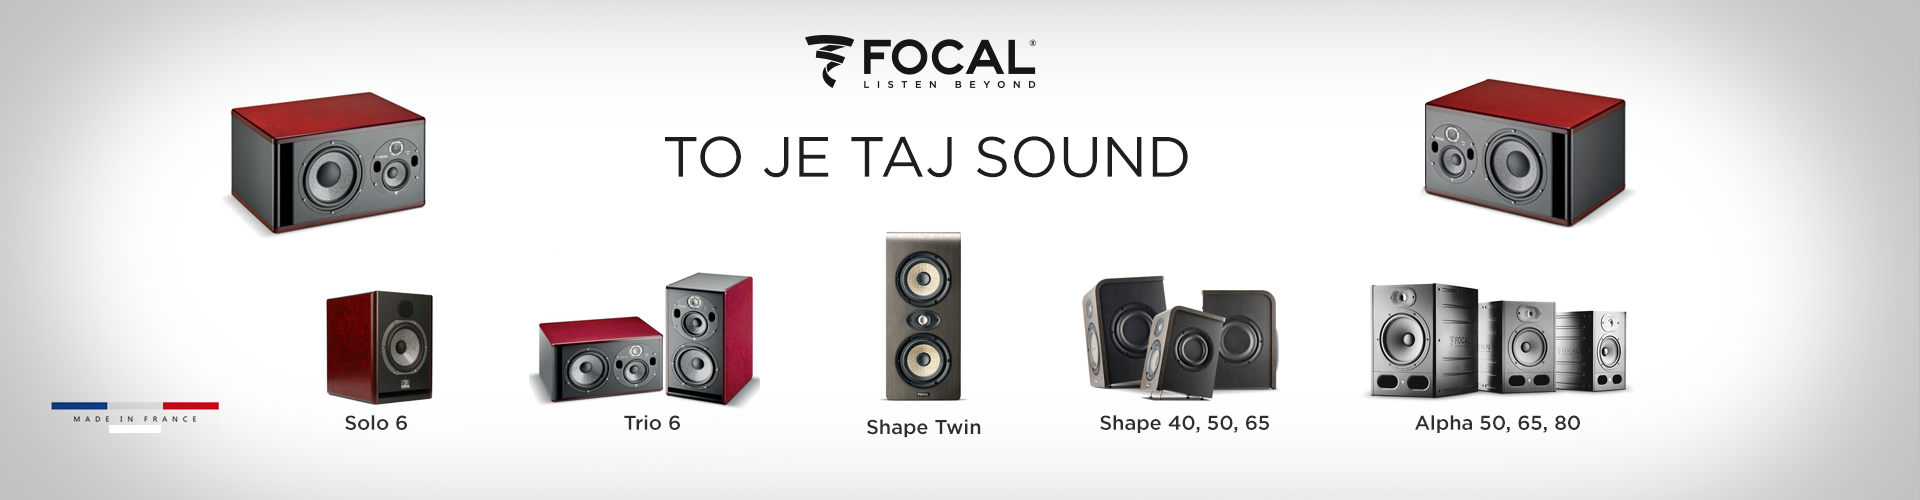 Focal to je taj saound